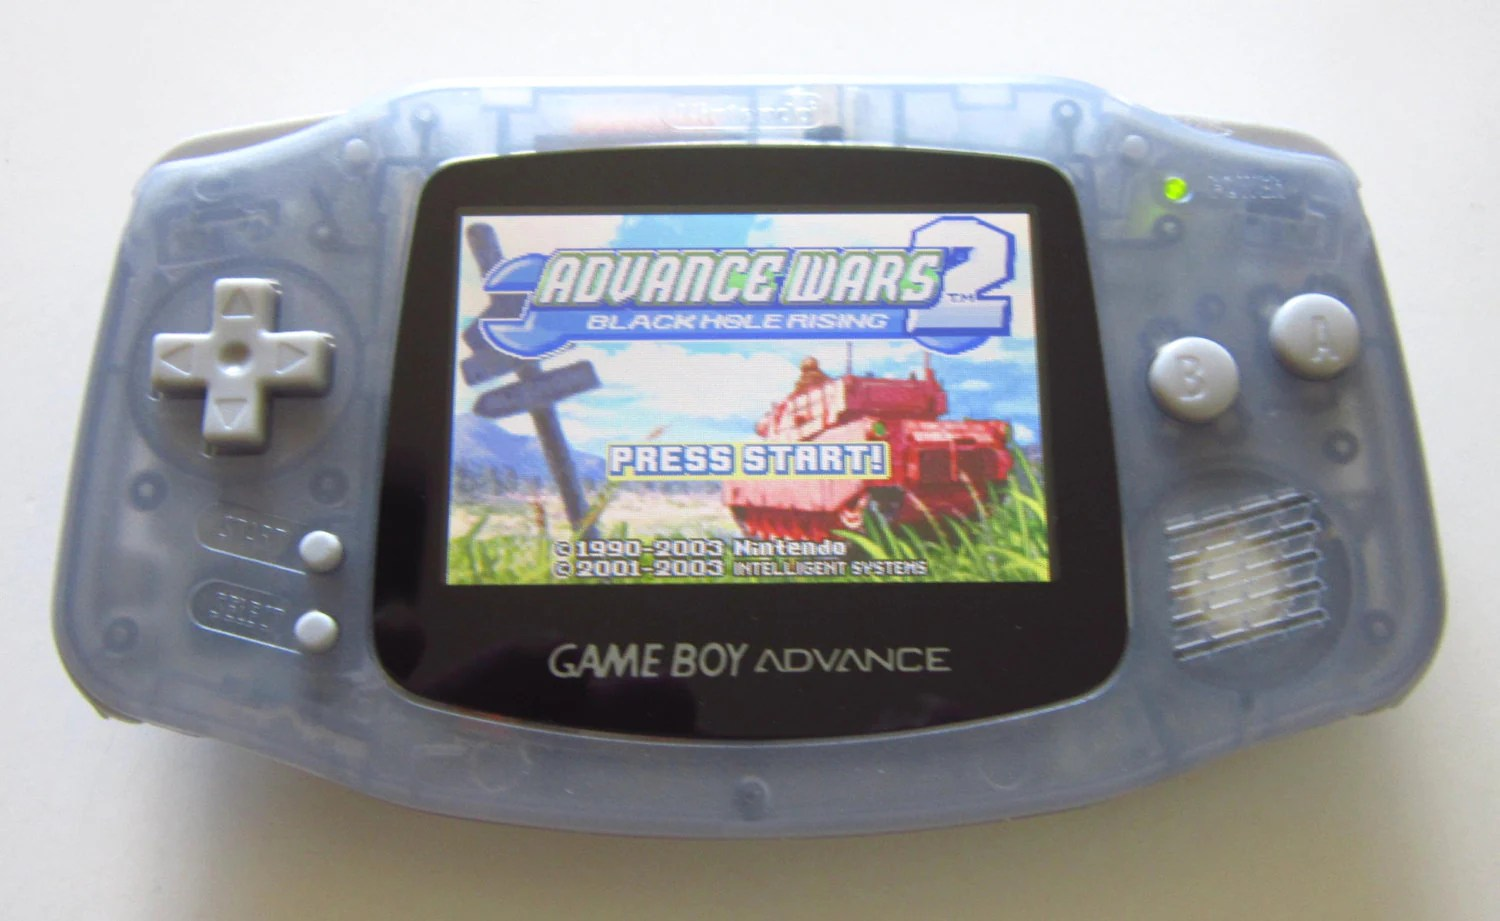 Gameboy Advance Display Beleuchtung Gameboy Advance With Ags 101 Brighter Screen Backlit Glacier